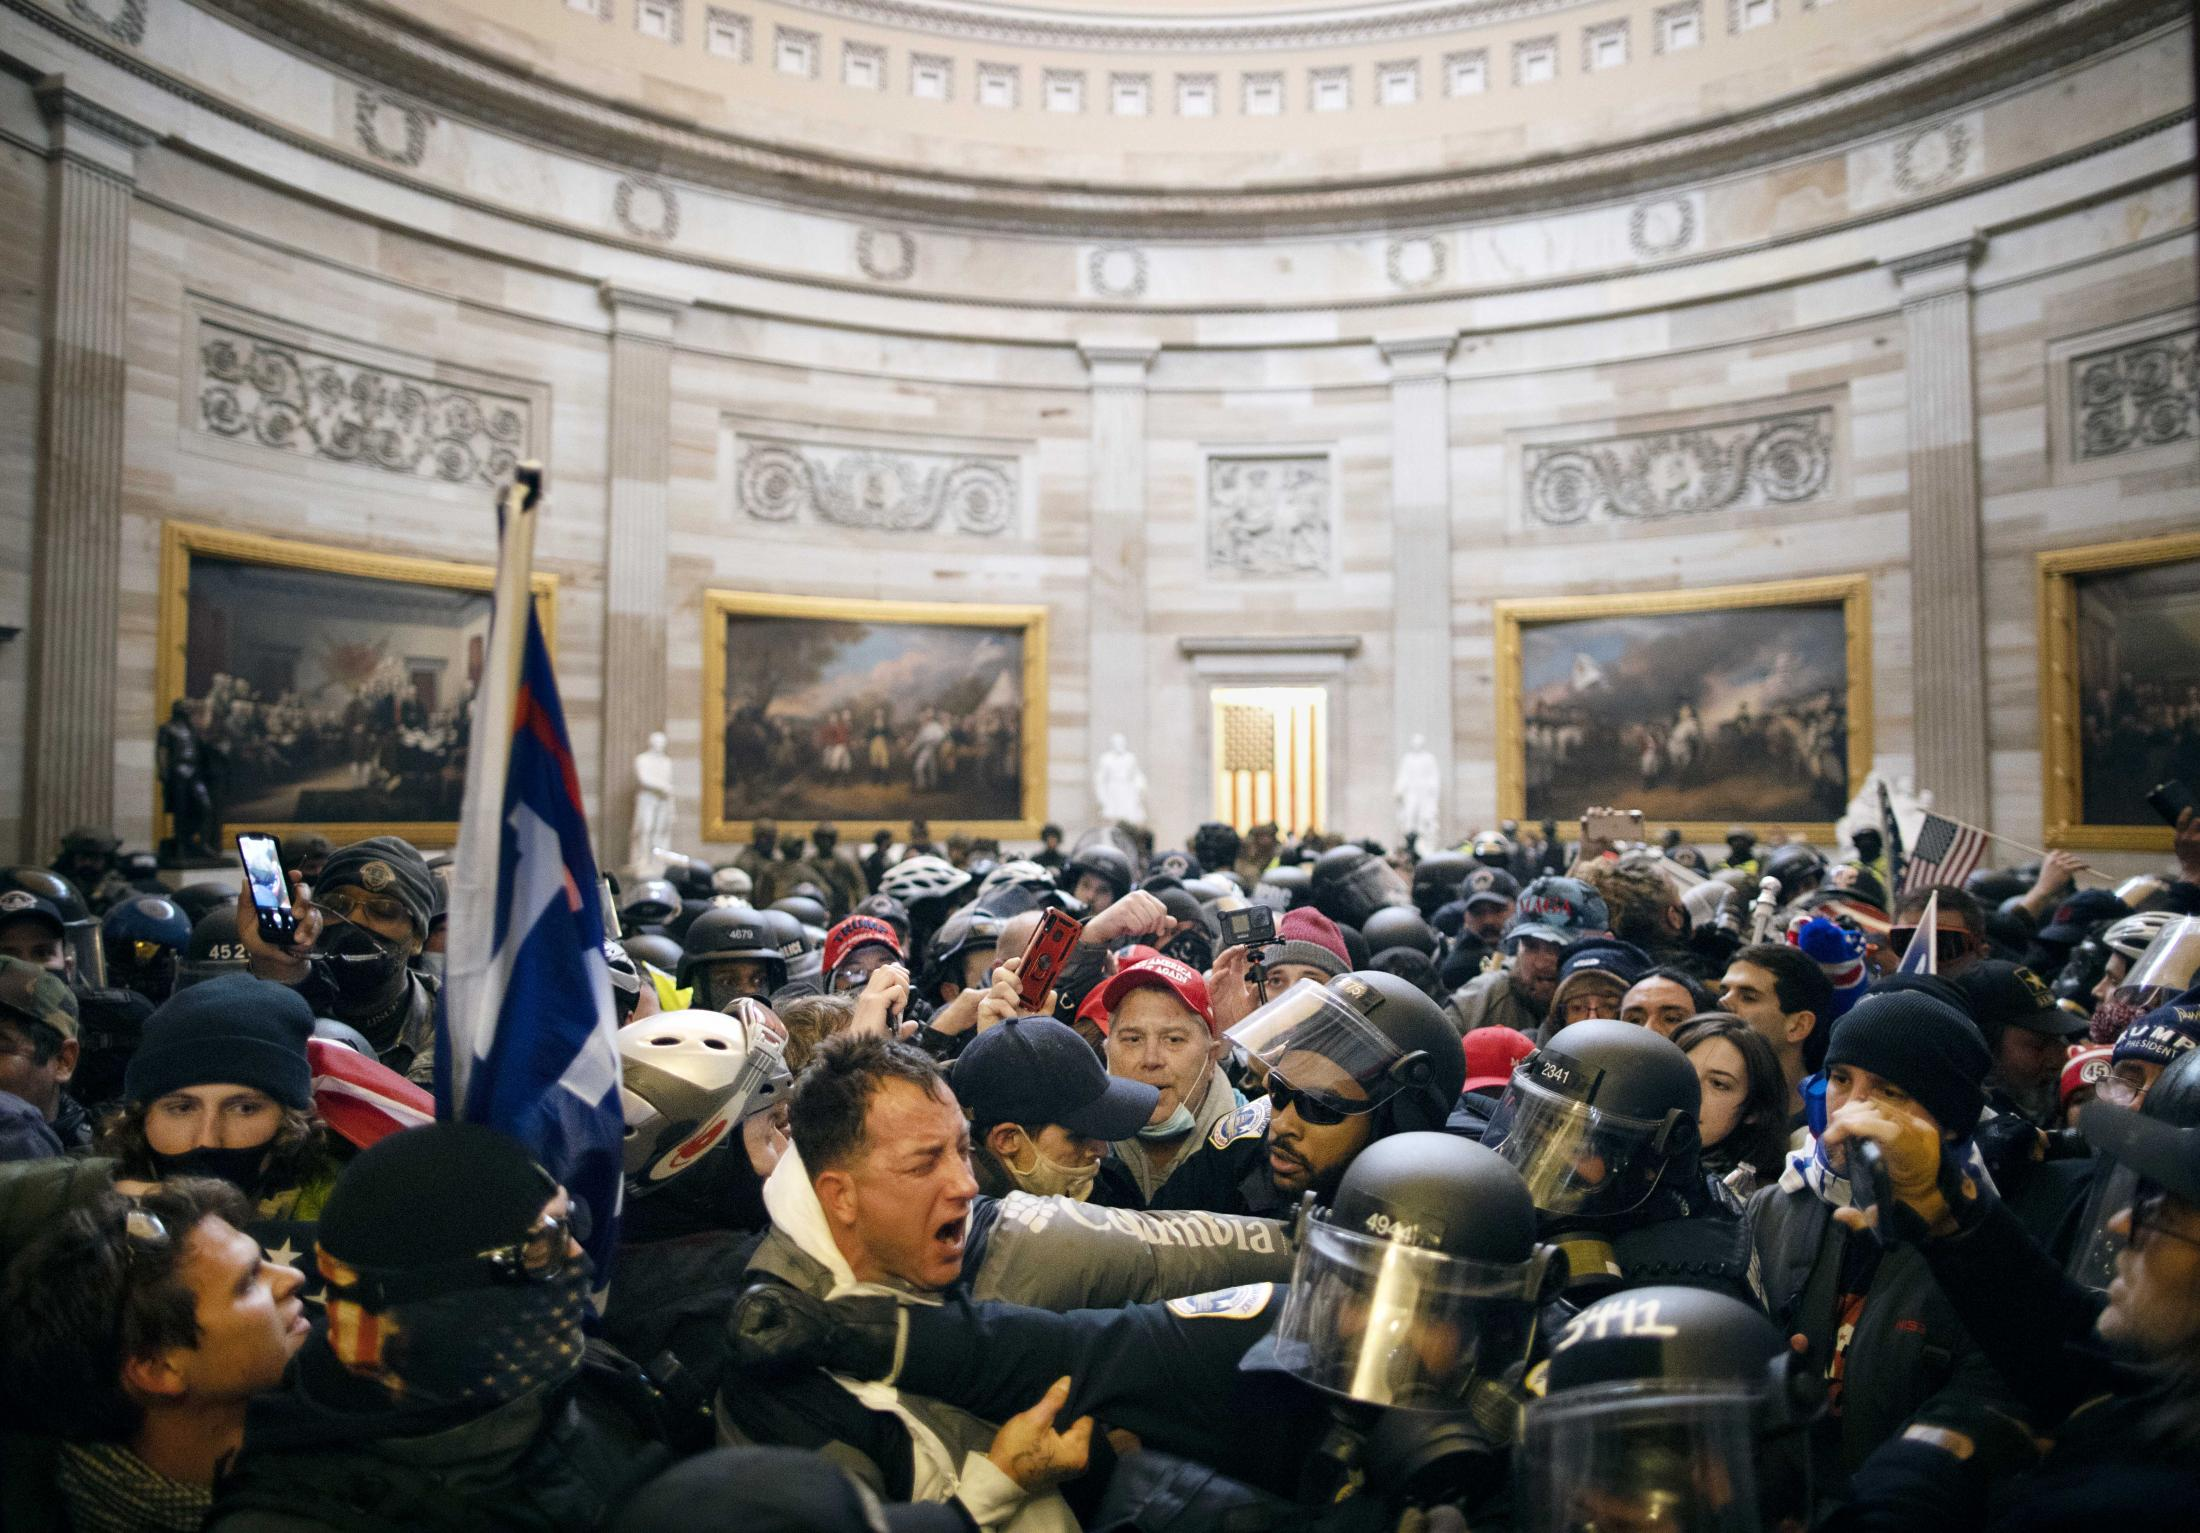 United States Capitol Police intervene as trump supporters breach security and enter the Capitol on Wednesday Jan 6, 2021.